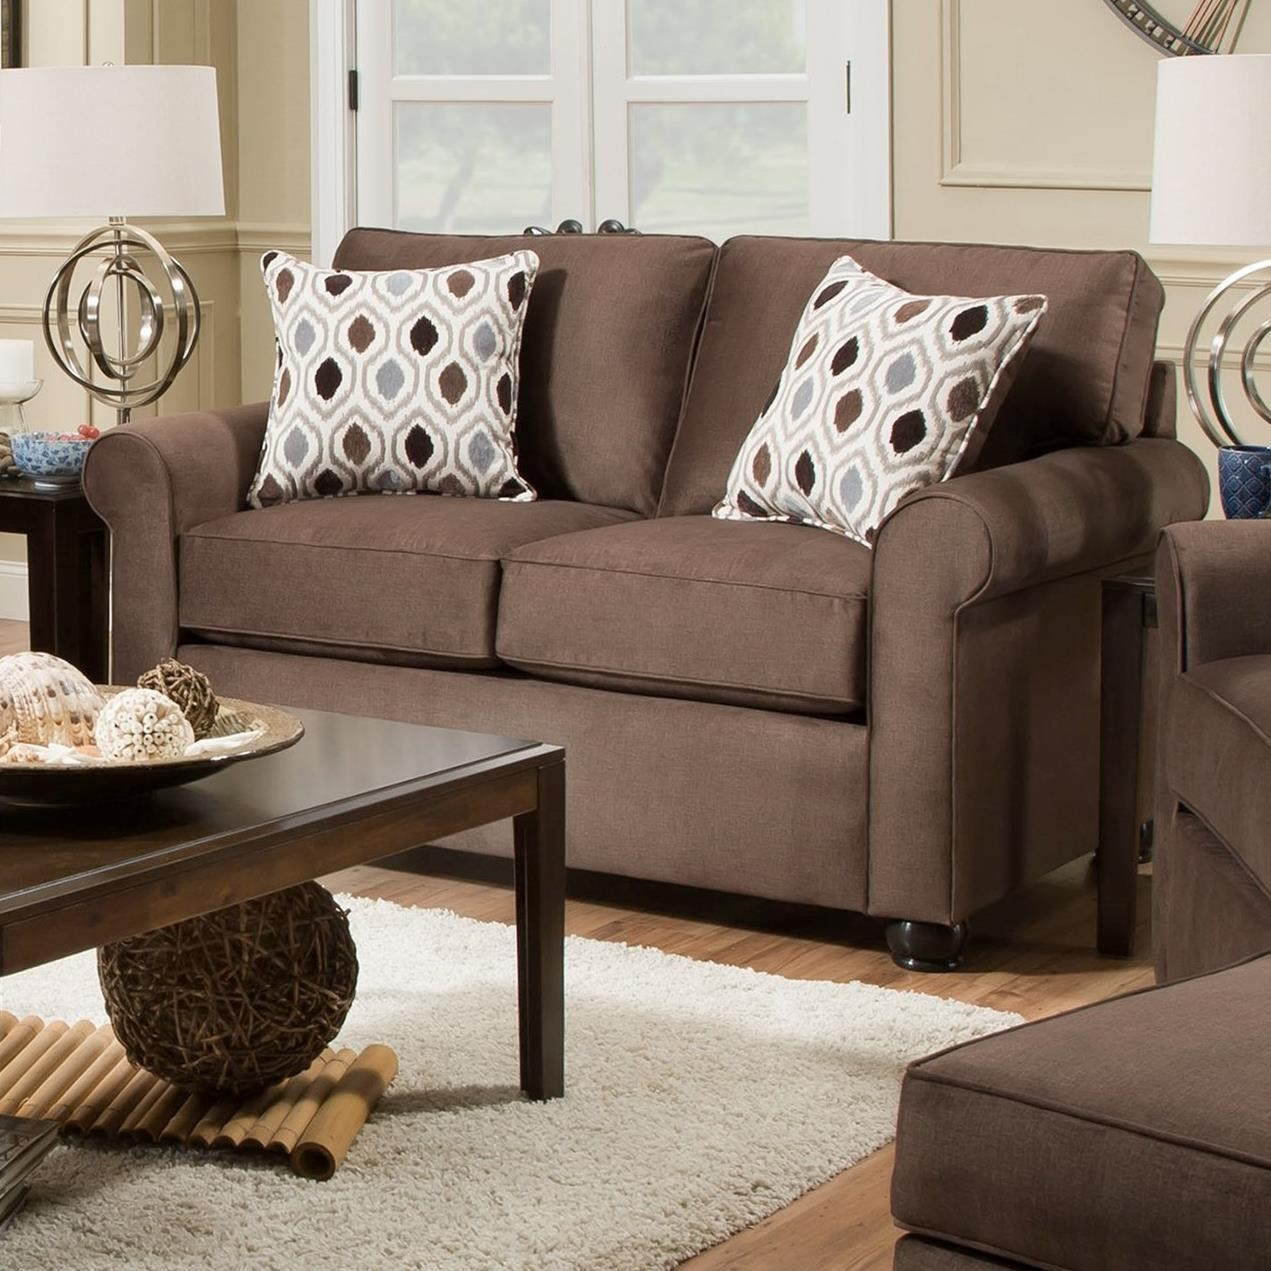 1530 Loveseat by United Furniture Industries at Dream Home Interiors